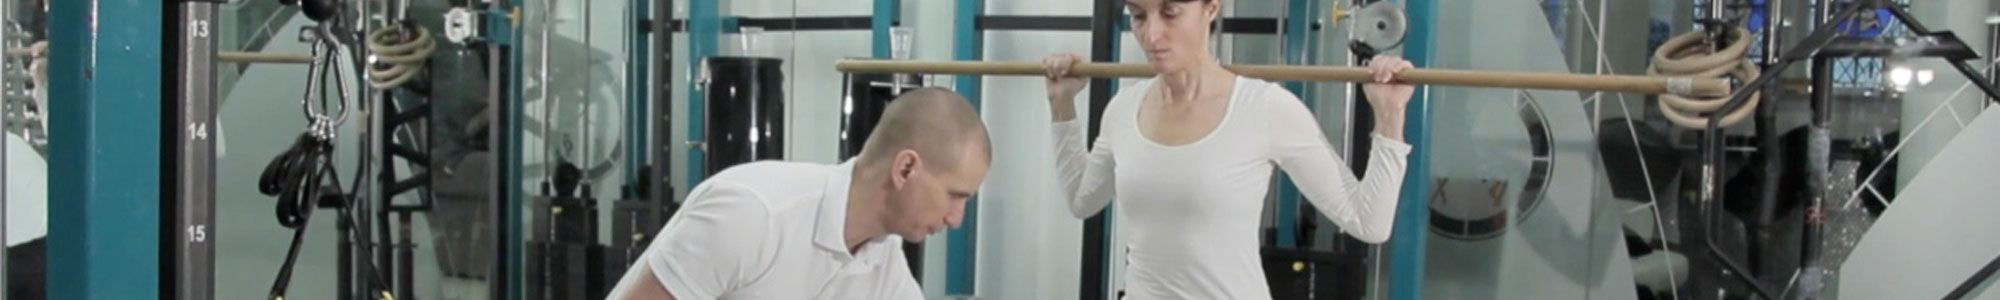 Research Proves Gyms Pose No Additional Risk of Catching COVID-19